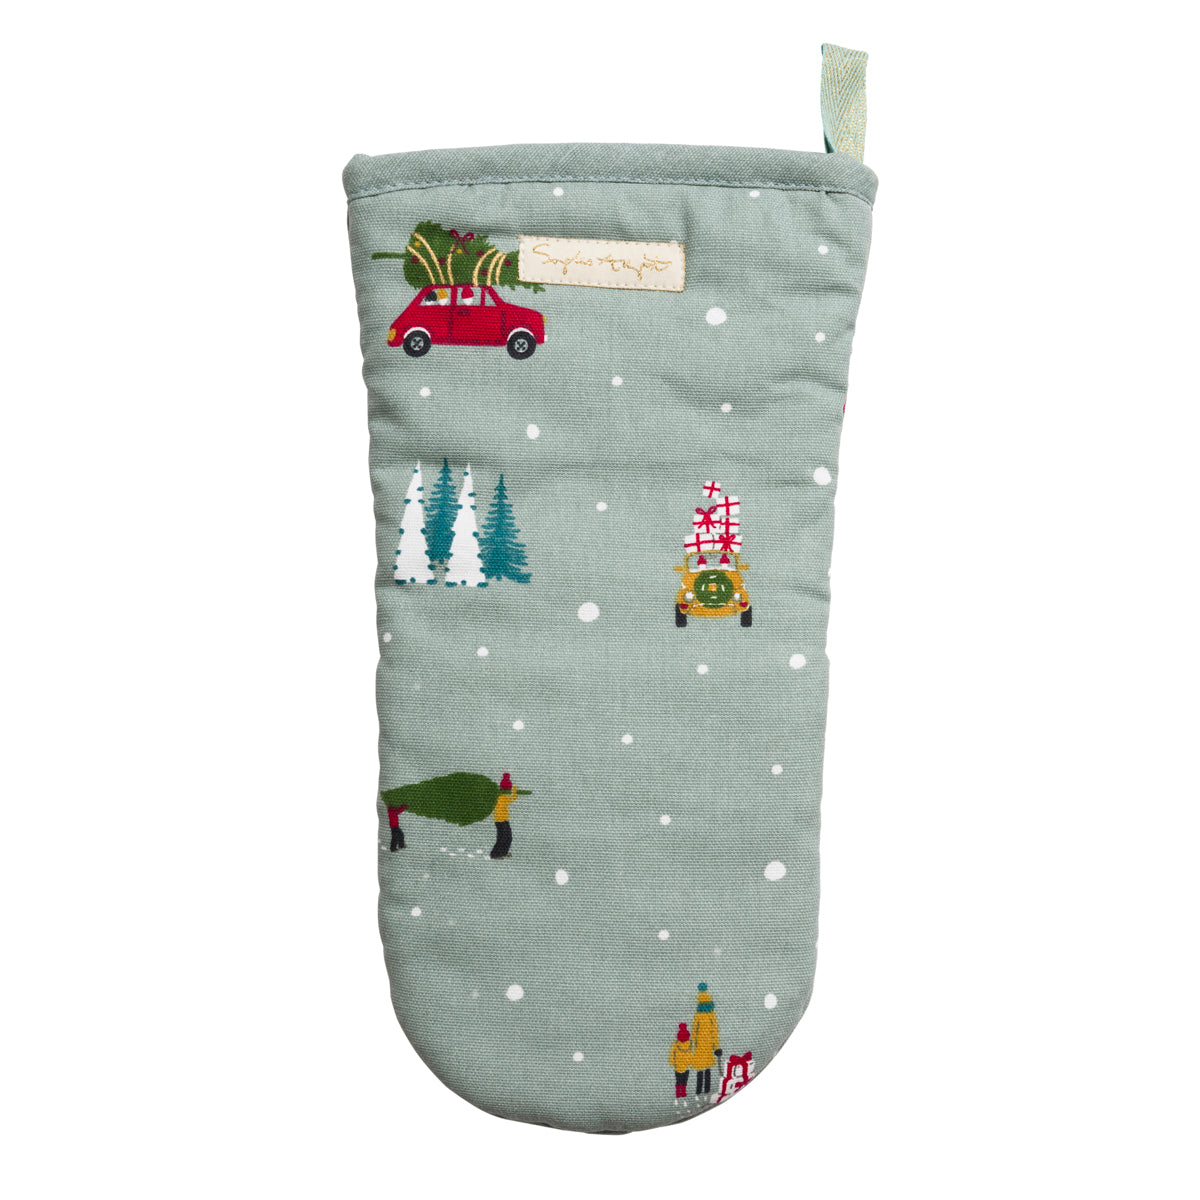 Home for Christmas Oven Mitt